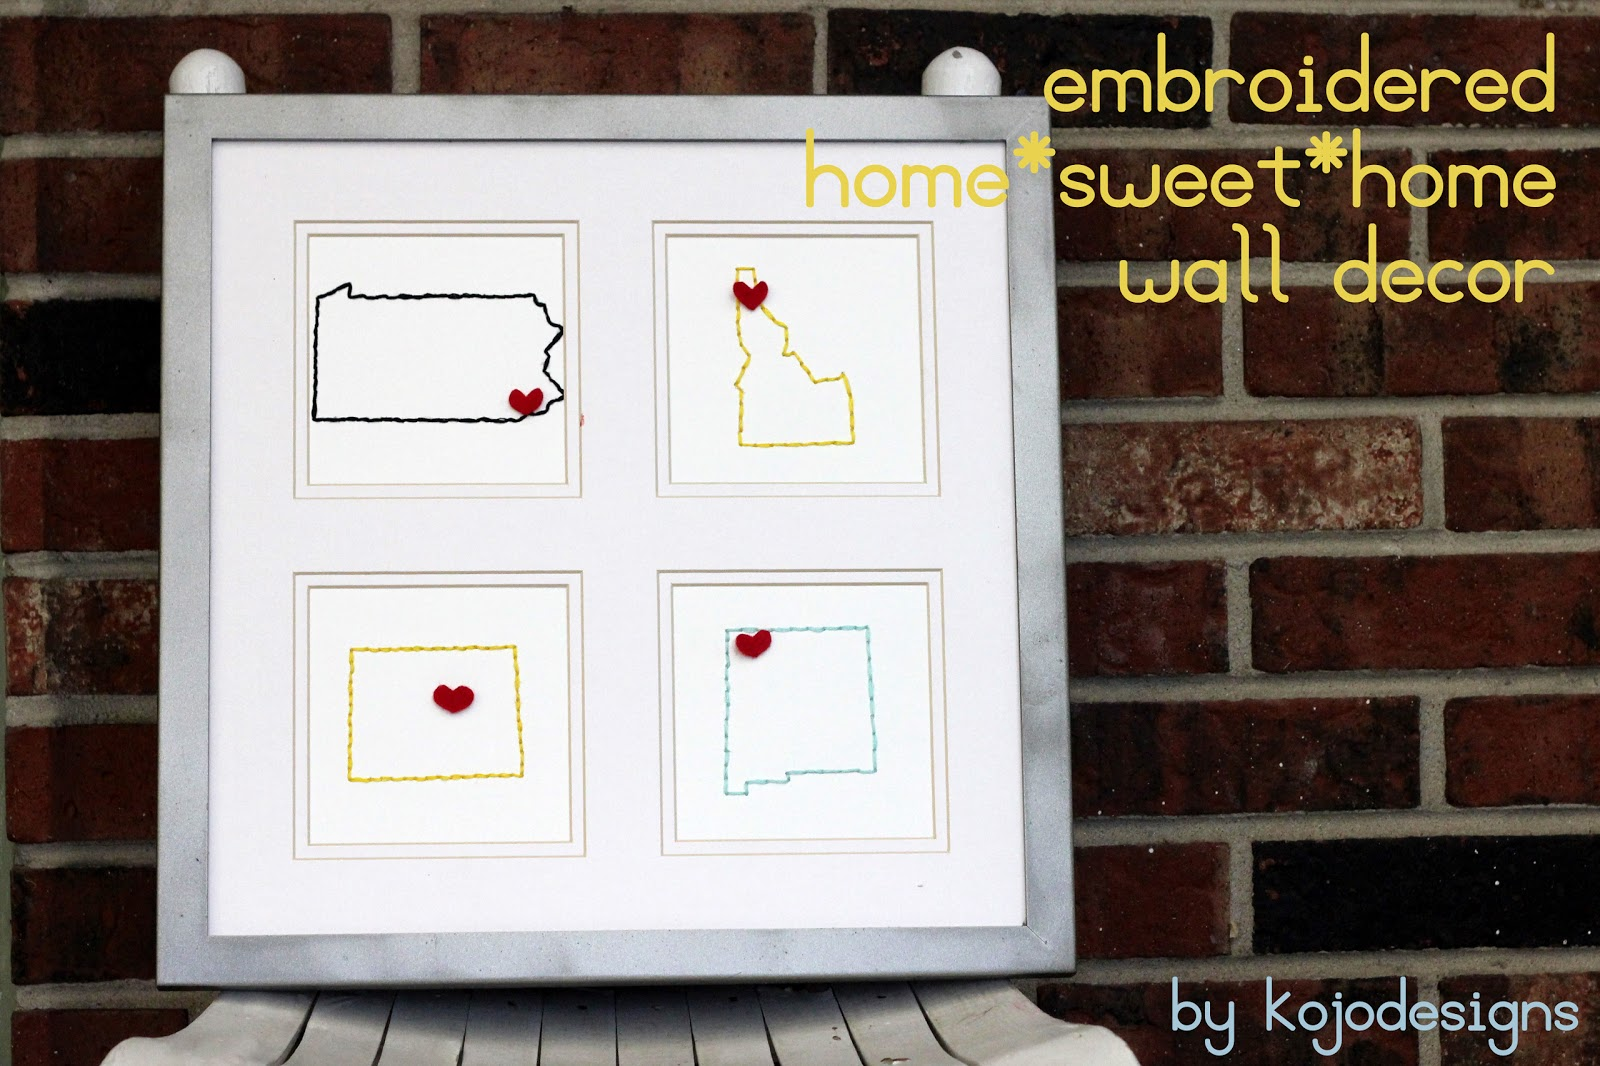 Embroidered Home Sweet Home Wall Decor